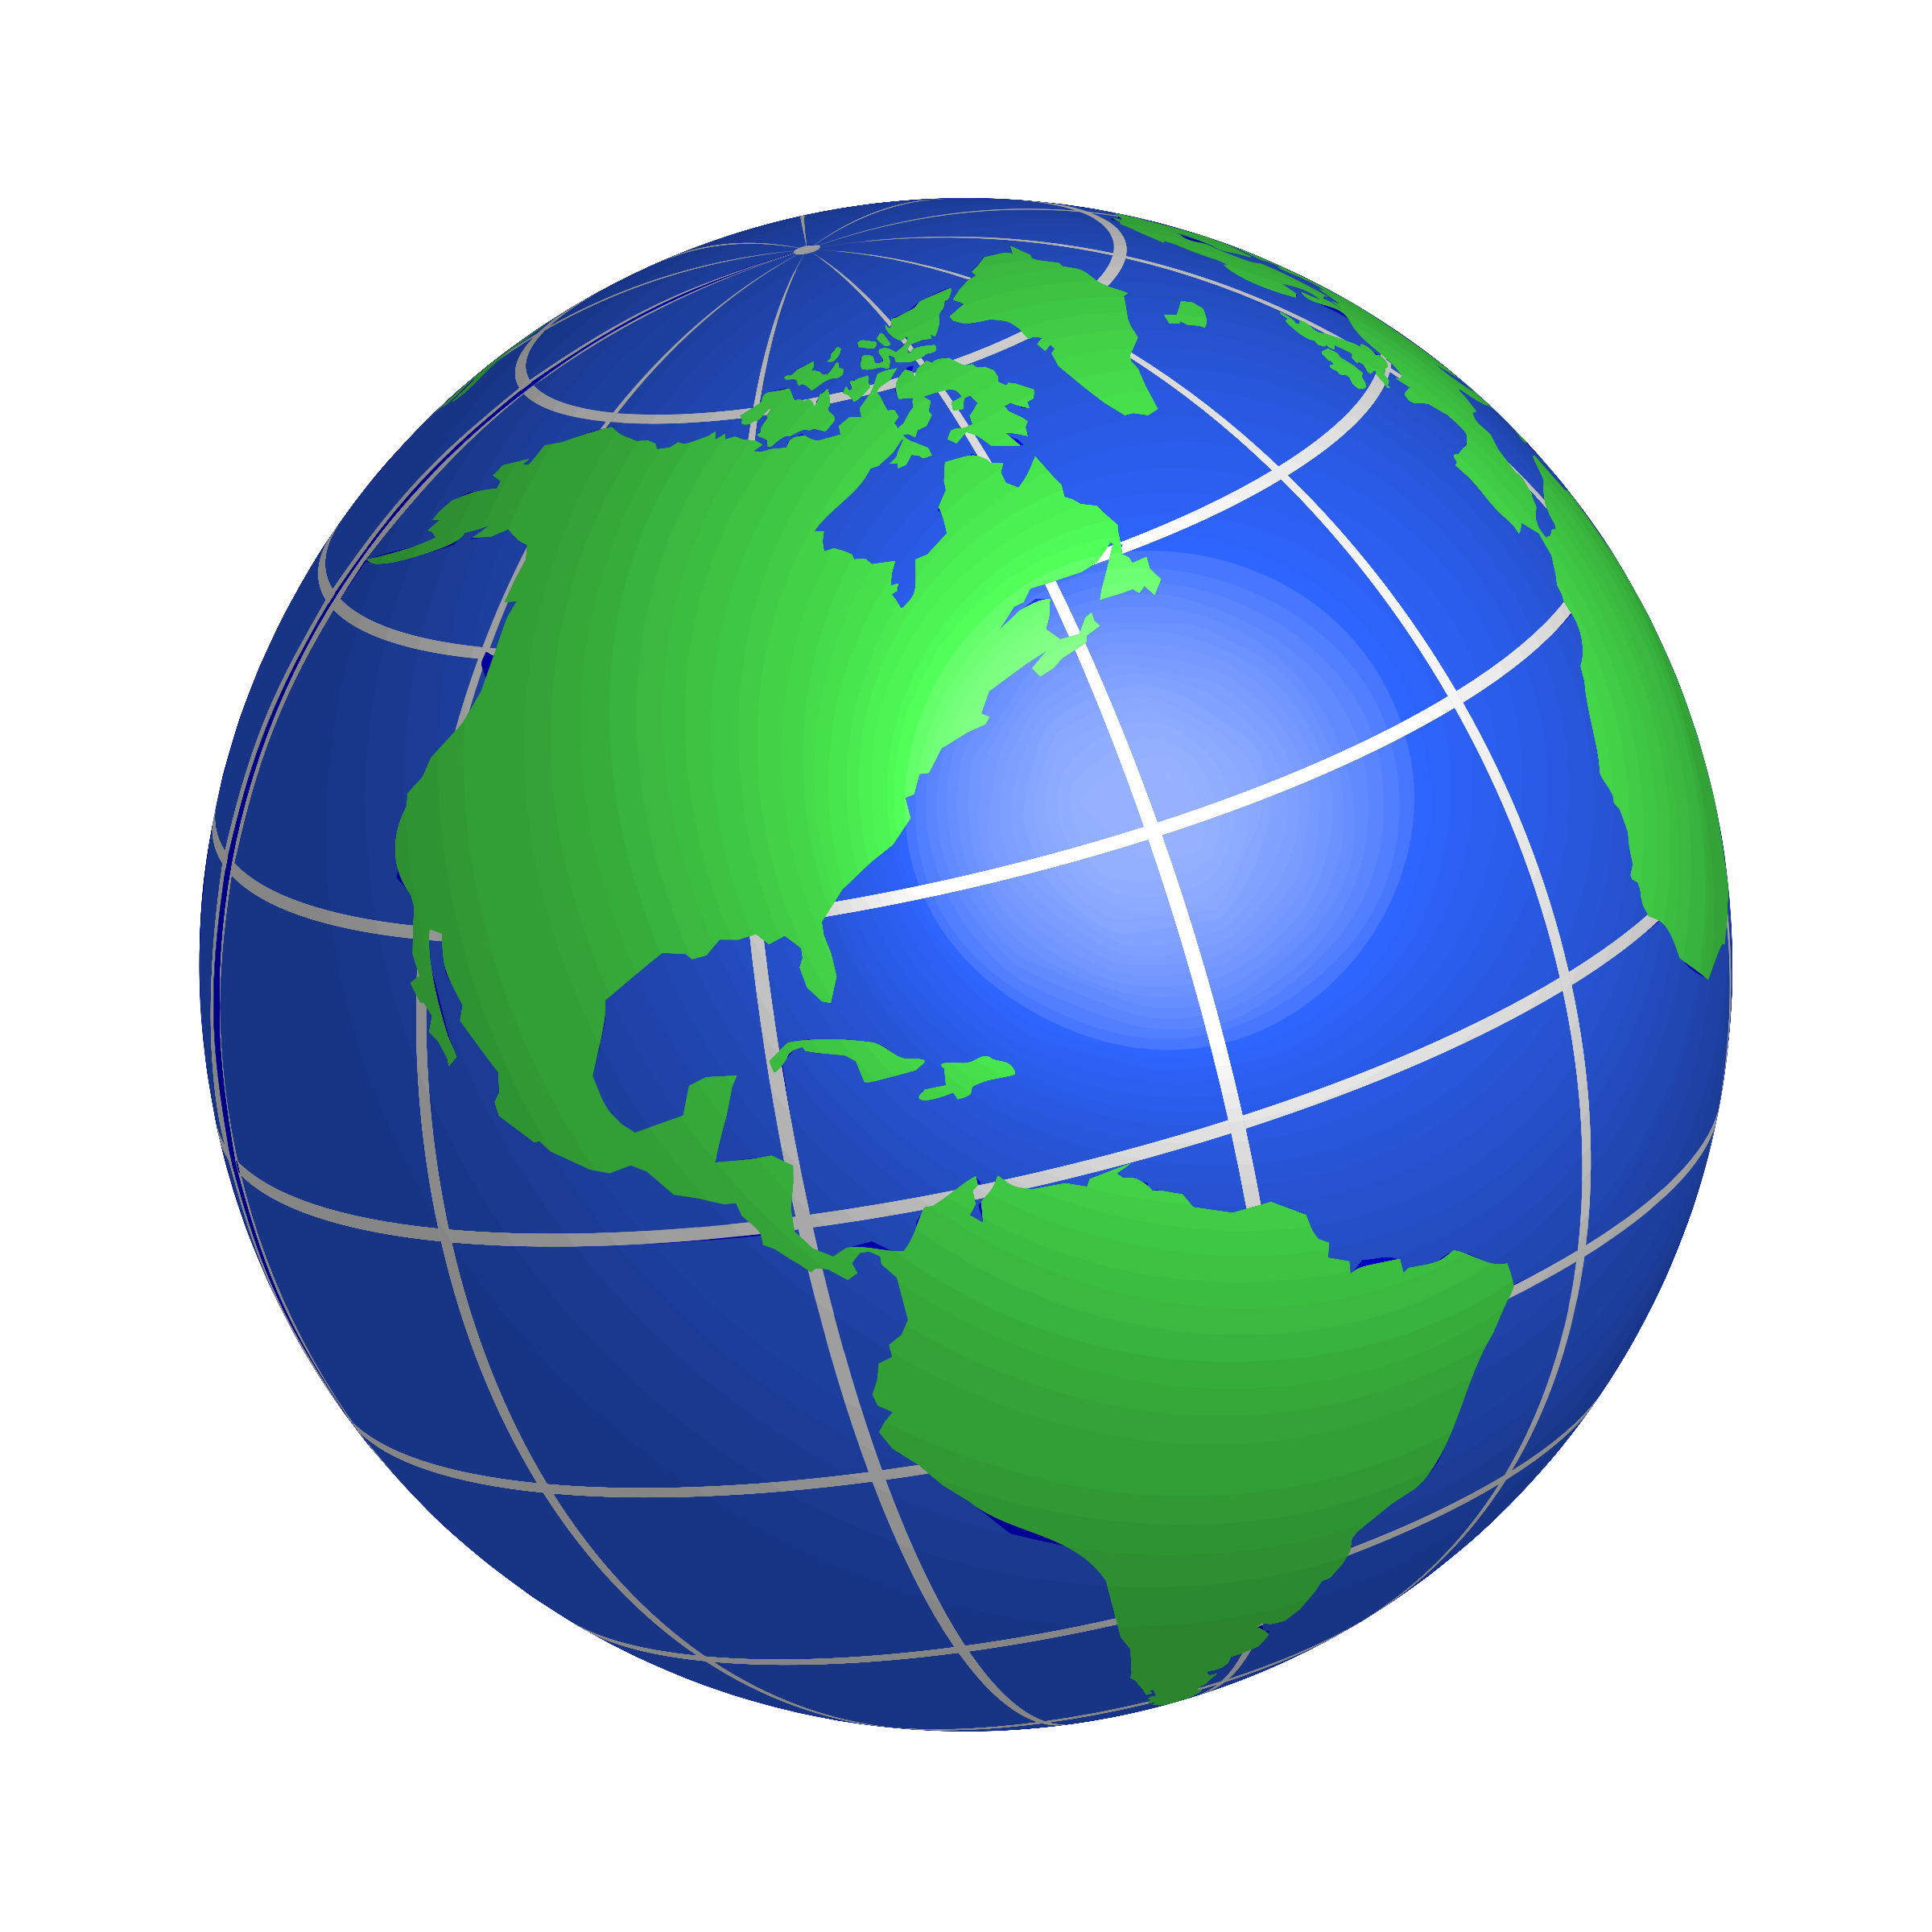 2400x2400 Globe Earth Clipart Black And White Free Images 4